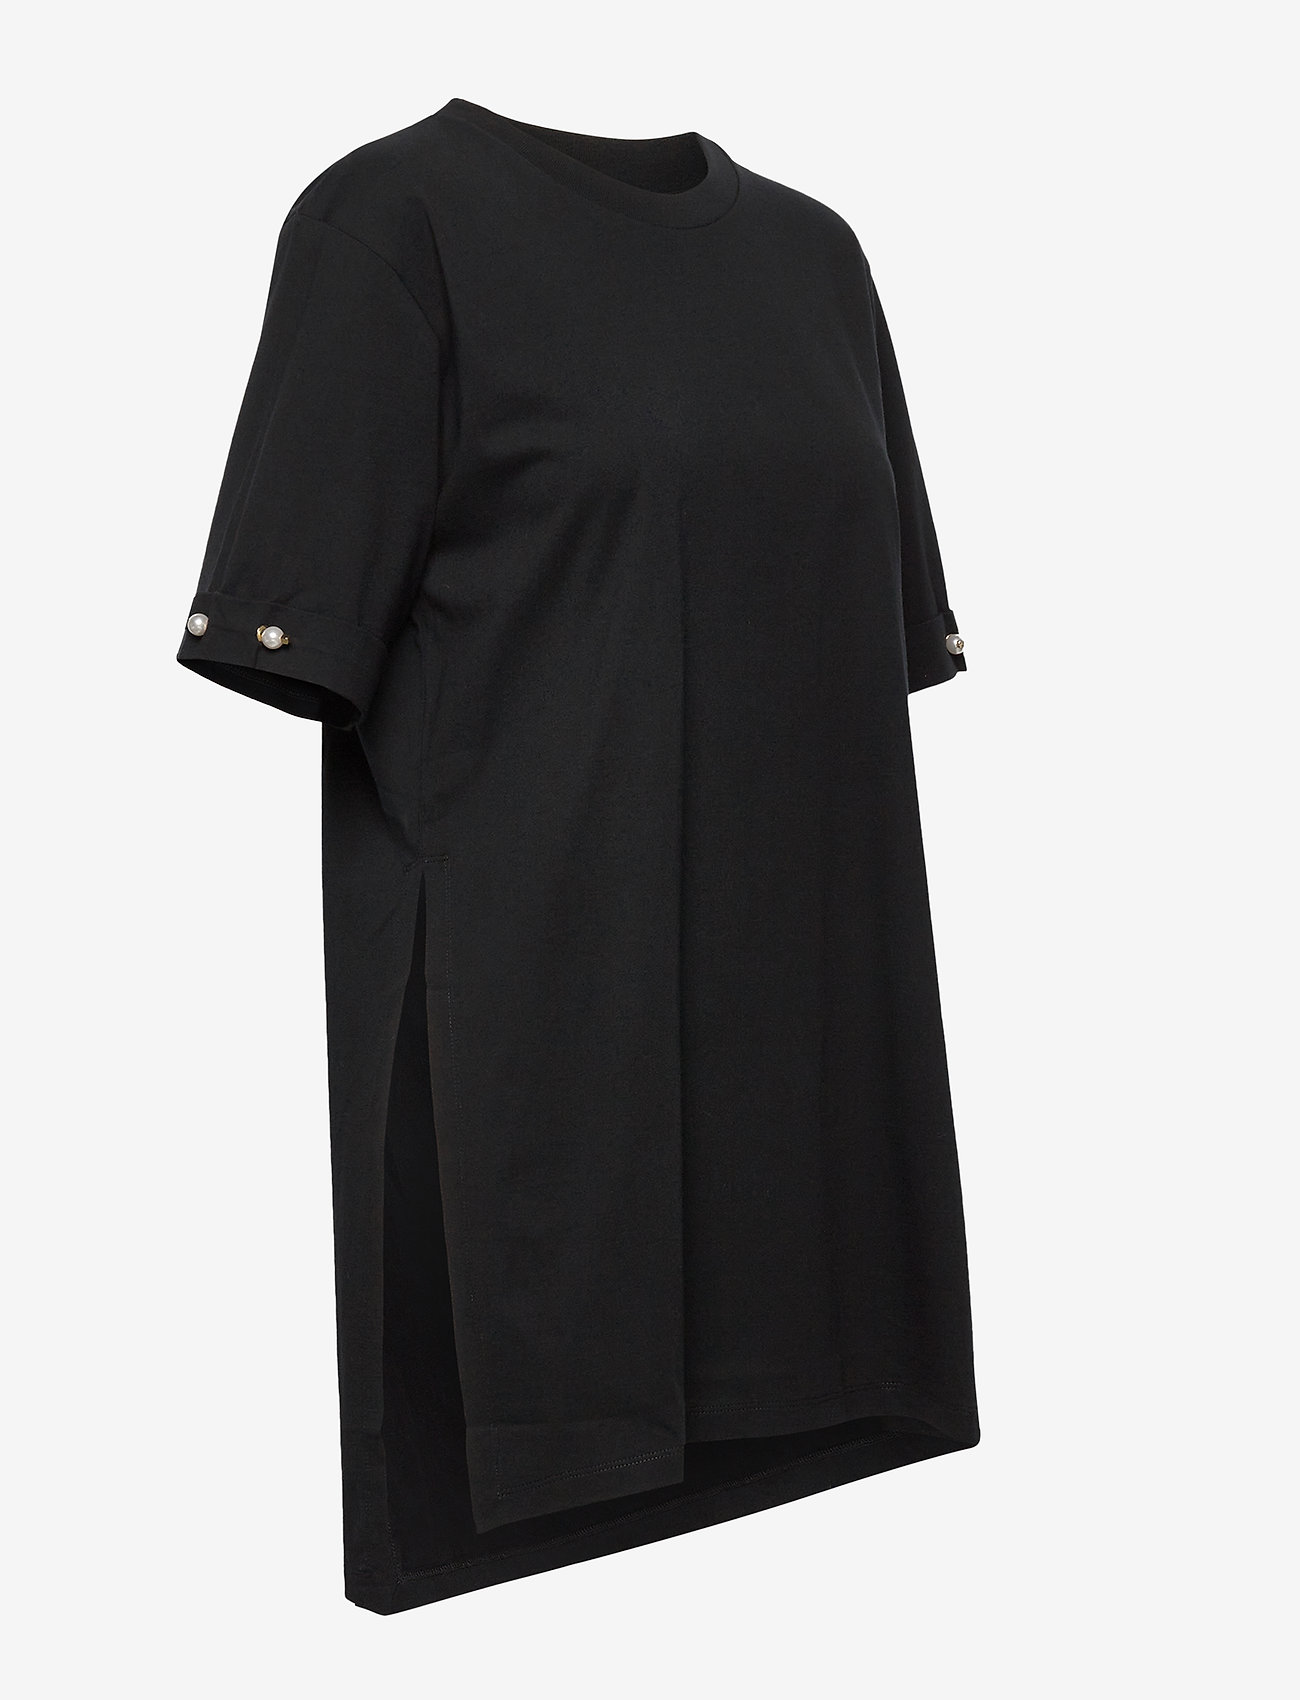 Mother of Pearl - MINTIE OVERSIZED T-SHIRT WITH PEARL BAR - t-shirts - black - 3